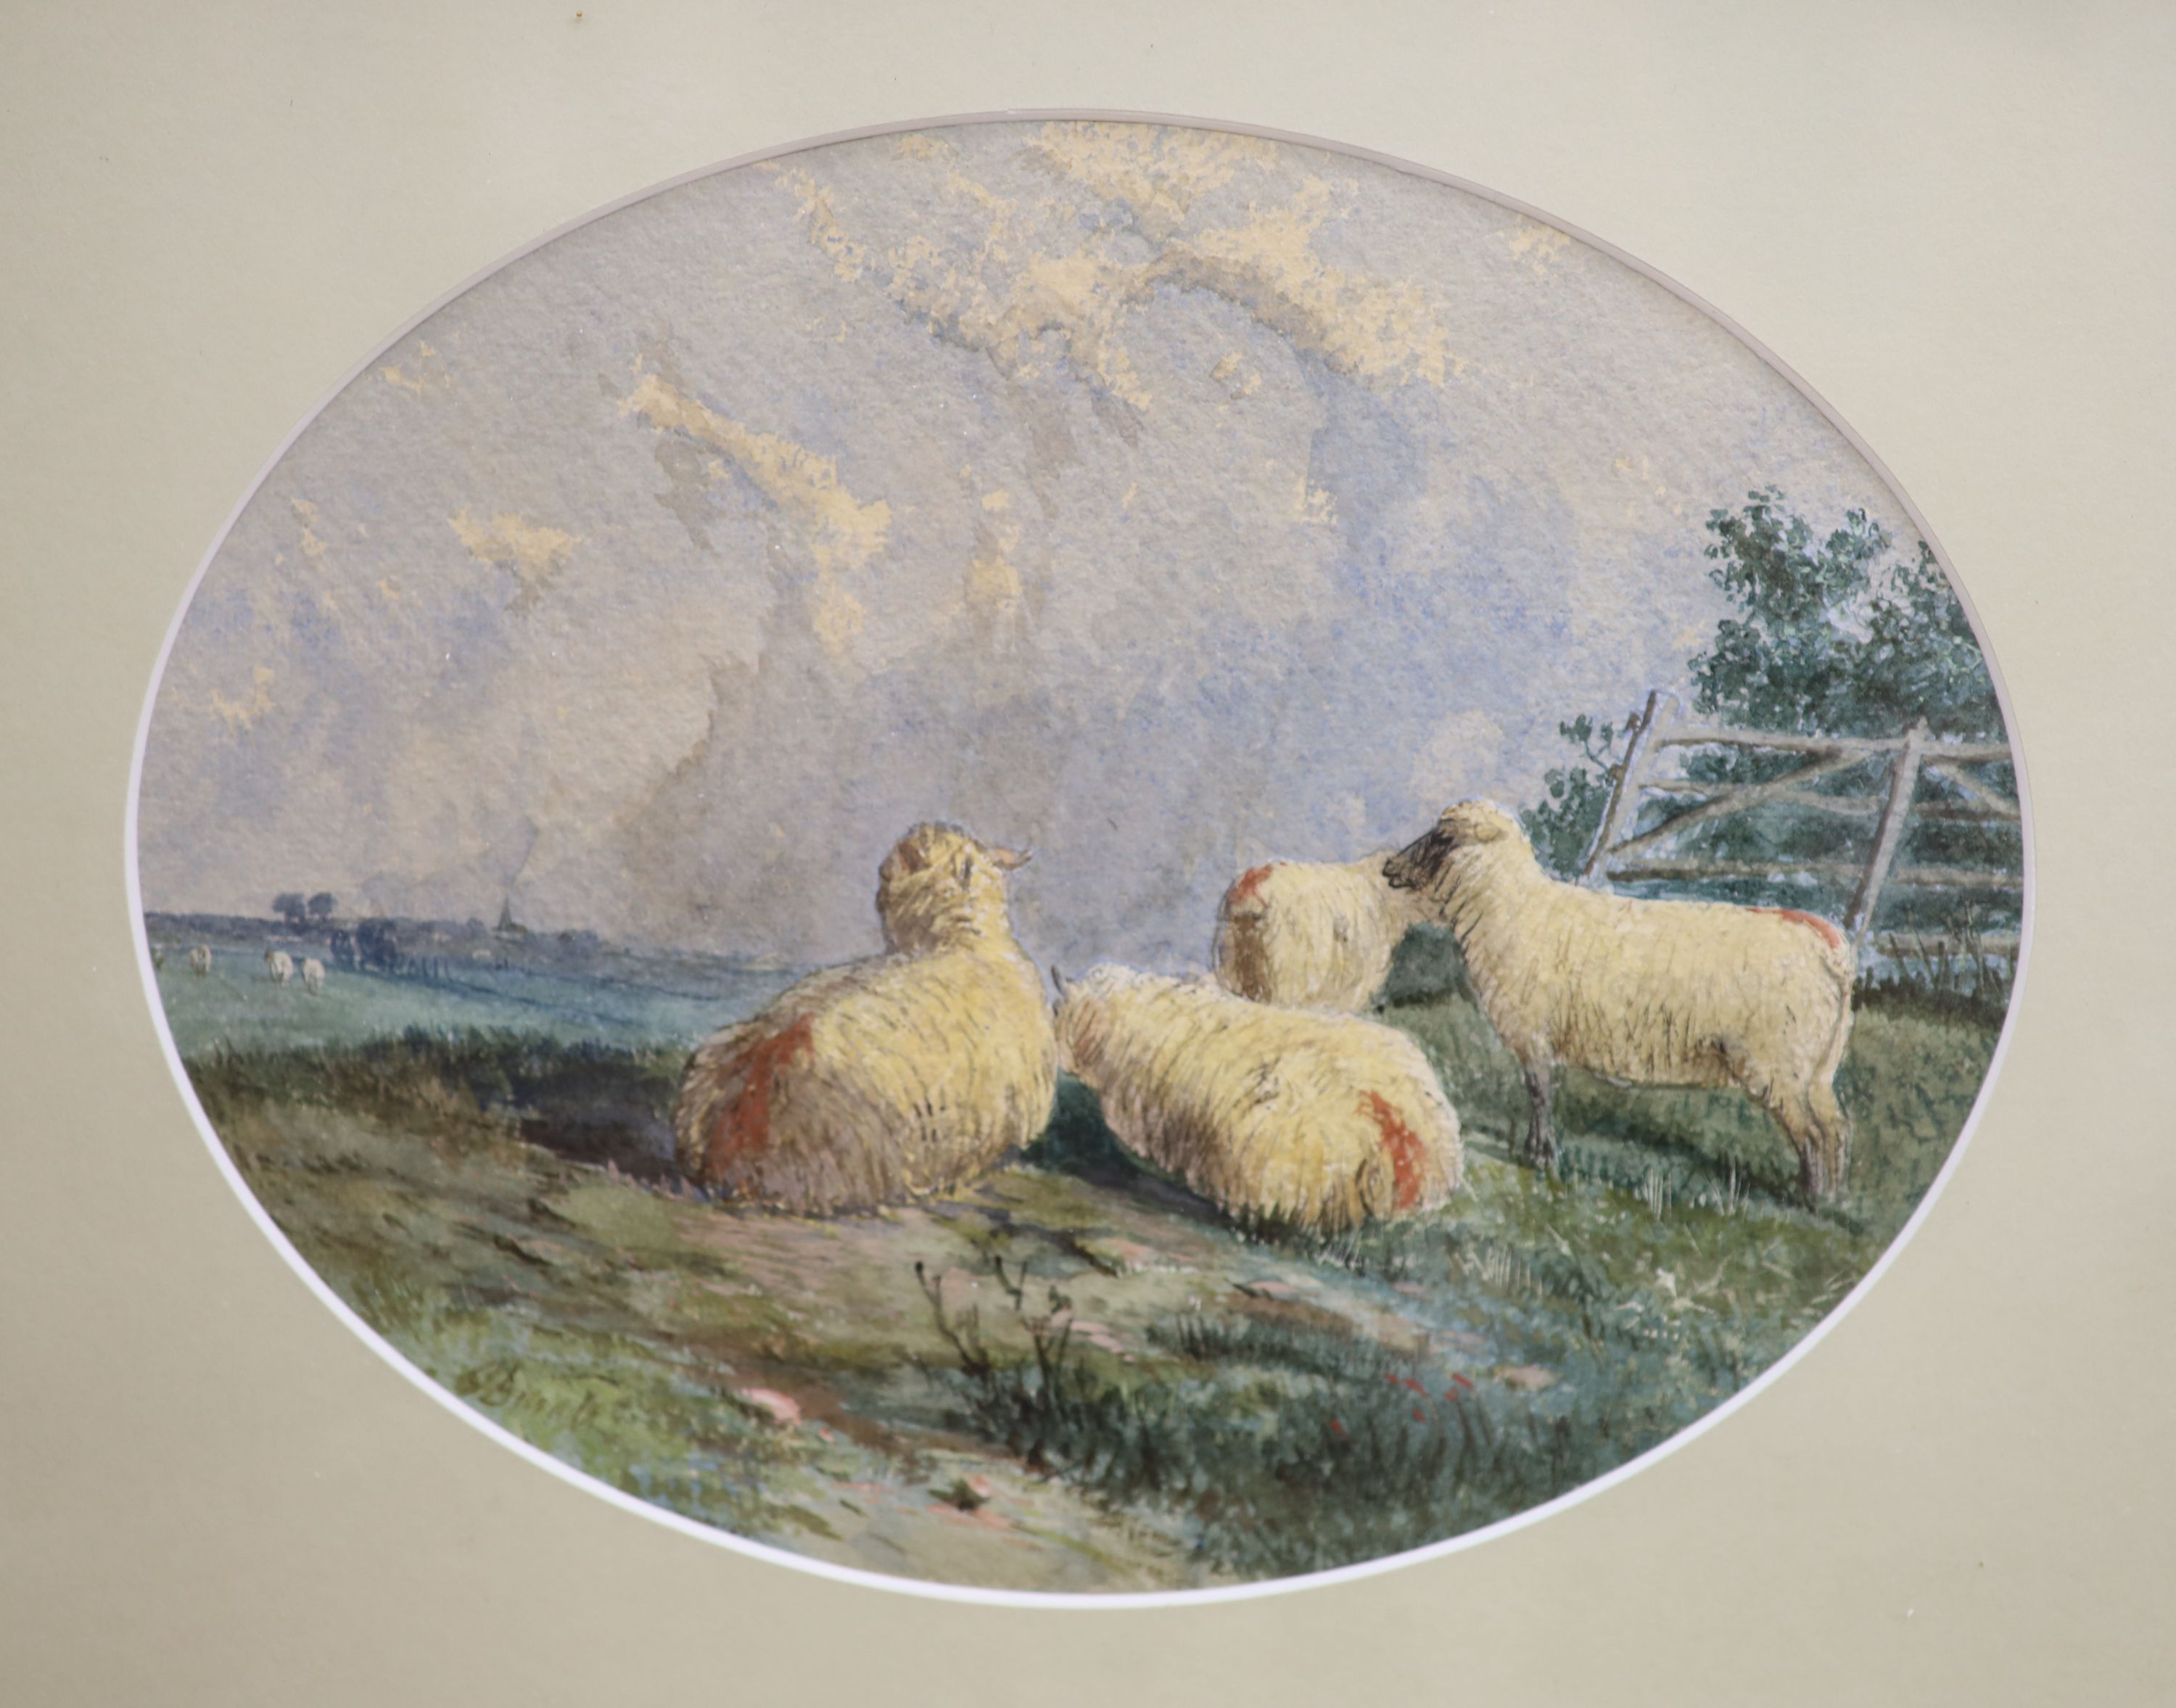 J.D. (19thC), pair of watercolours, Studies of sheep, indistinctly signed, 19 x 24cm - Image 2 of 3